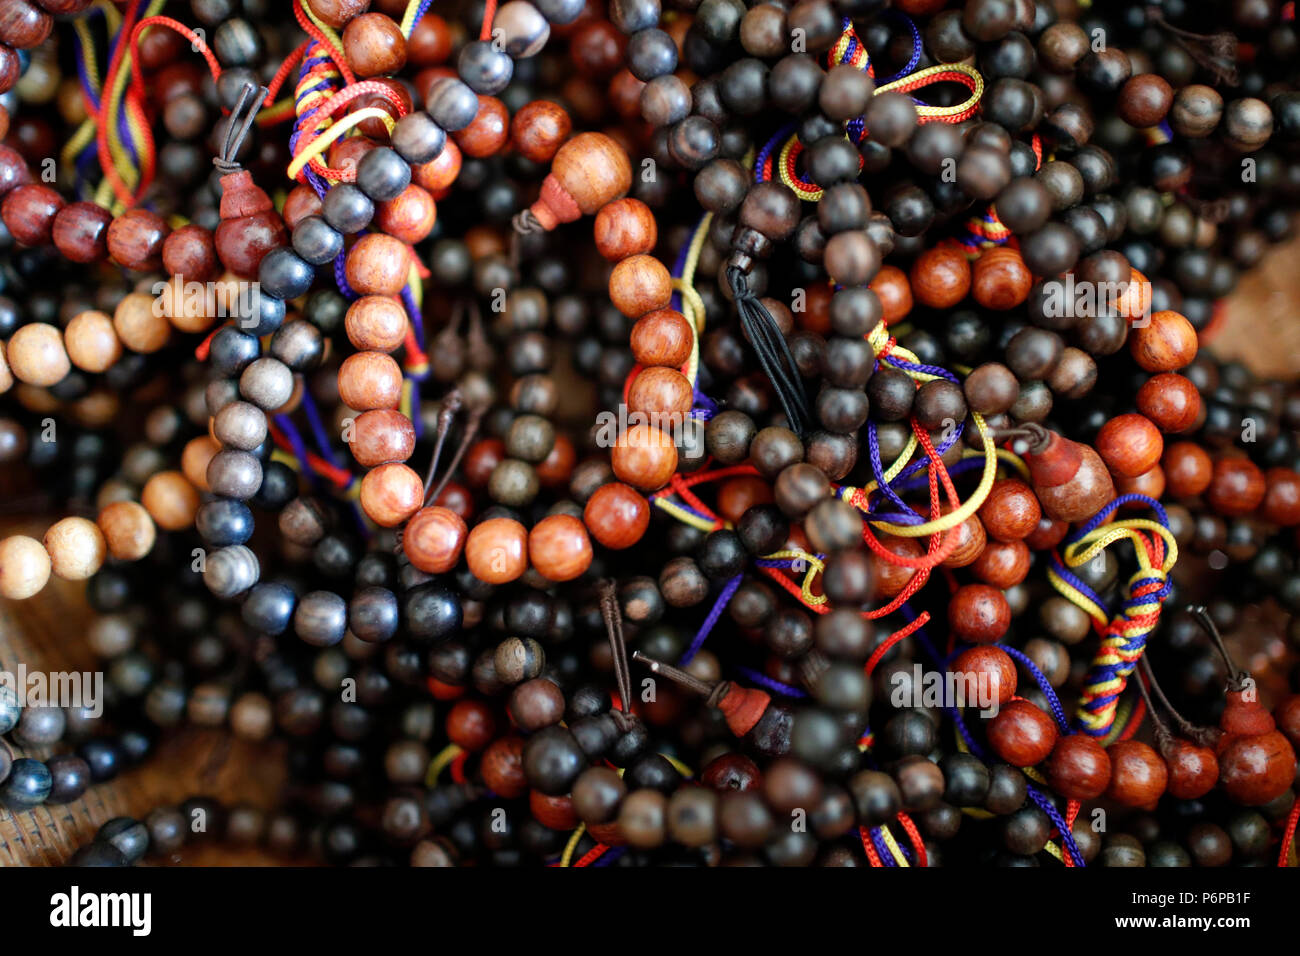 Buddhist prayer beads or malas. Saint-Pierre en Faucigny. France. - Stock Image